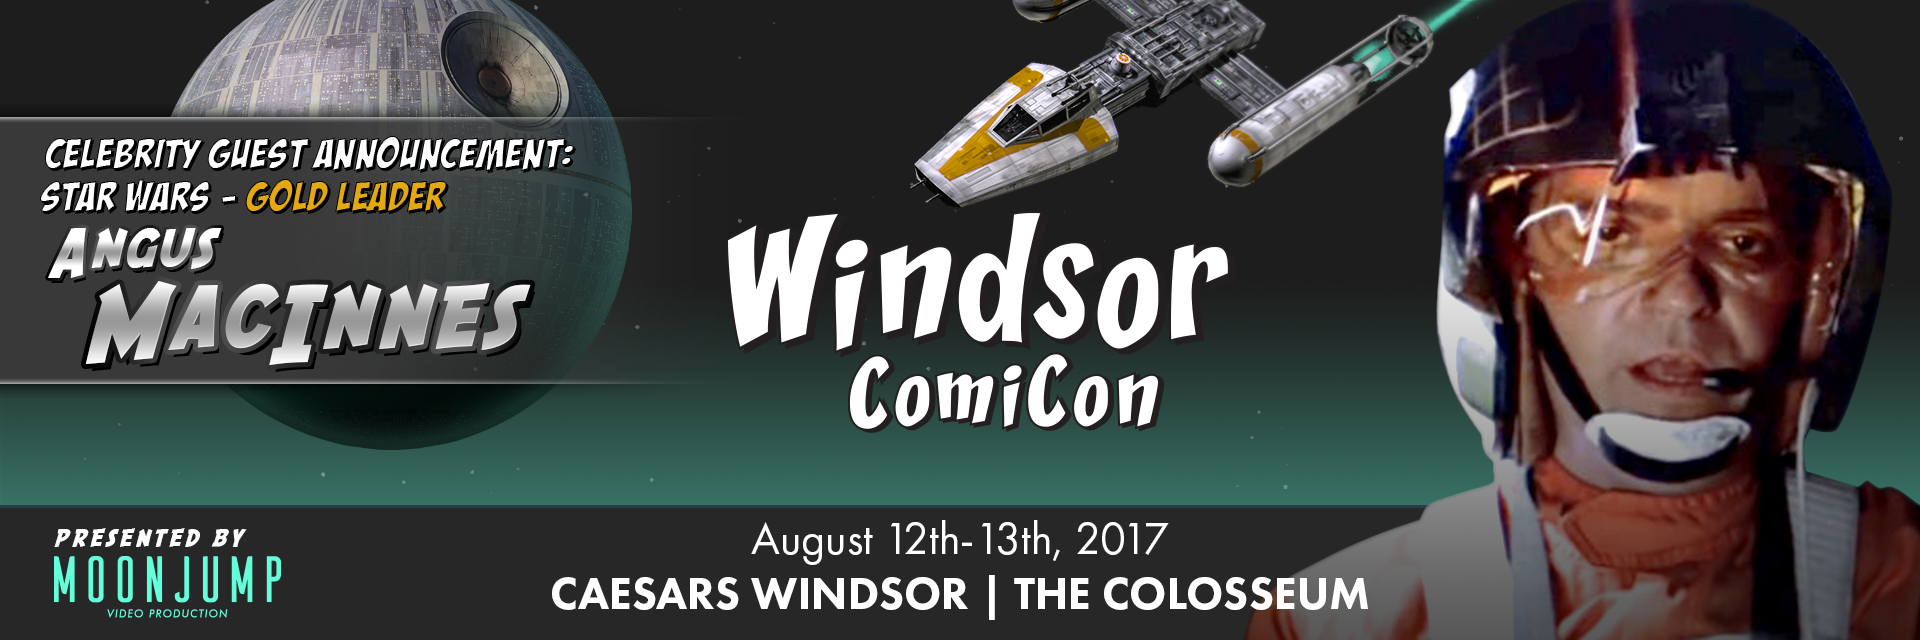 Angus Macinnes from Star Wars to attend Windsor ComiCon 2017